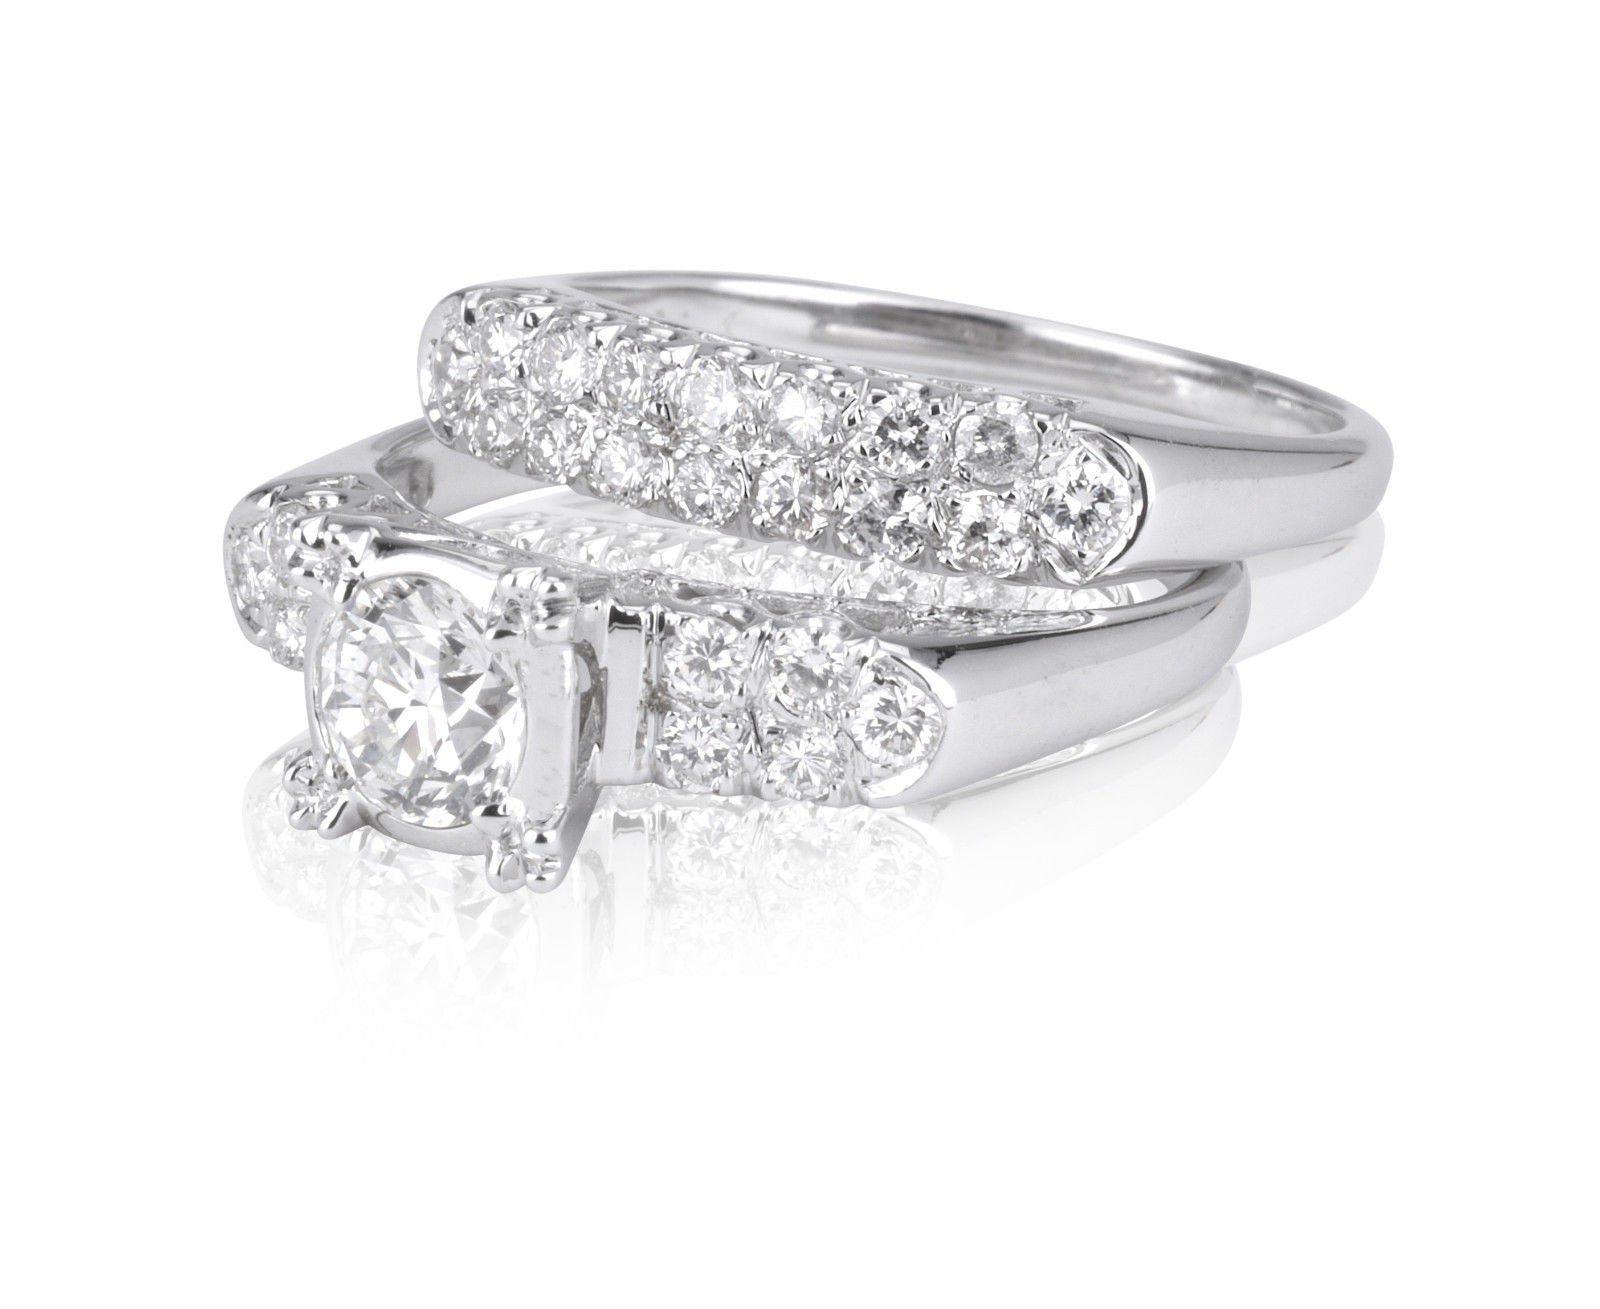 14k White Gold  Diamond Engagement Ring Set Size 6 3/4 1/2ct. center  1.25 tcw